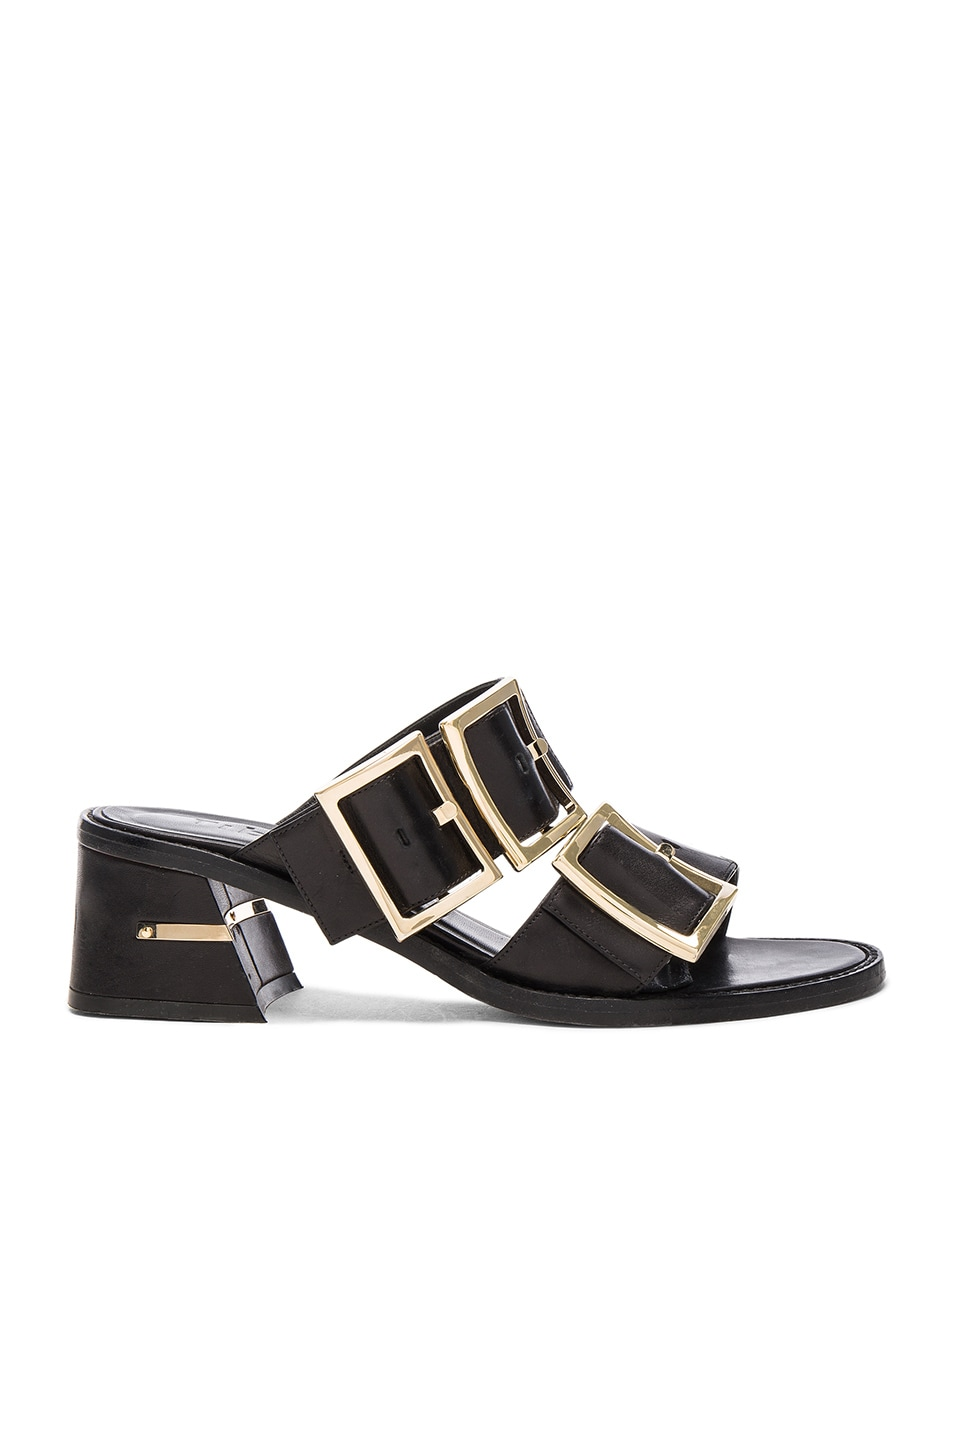 Image 1 of Tibi Leather Kari Sandals in Black